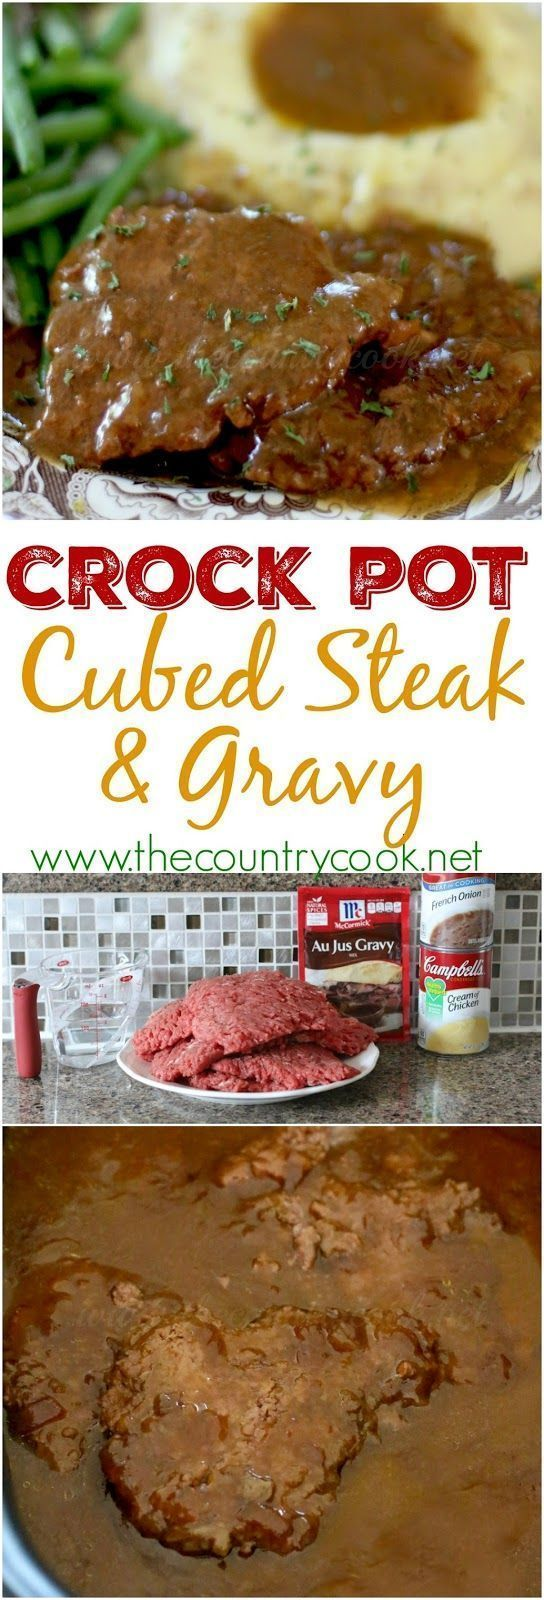 Crock Pot Cubed Steak with Gravy recipe from The Country Cook #crockpot #slowcooker